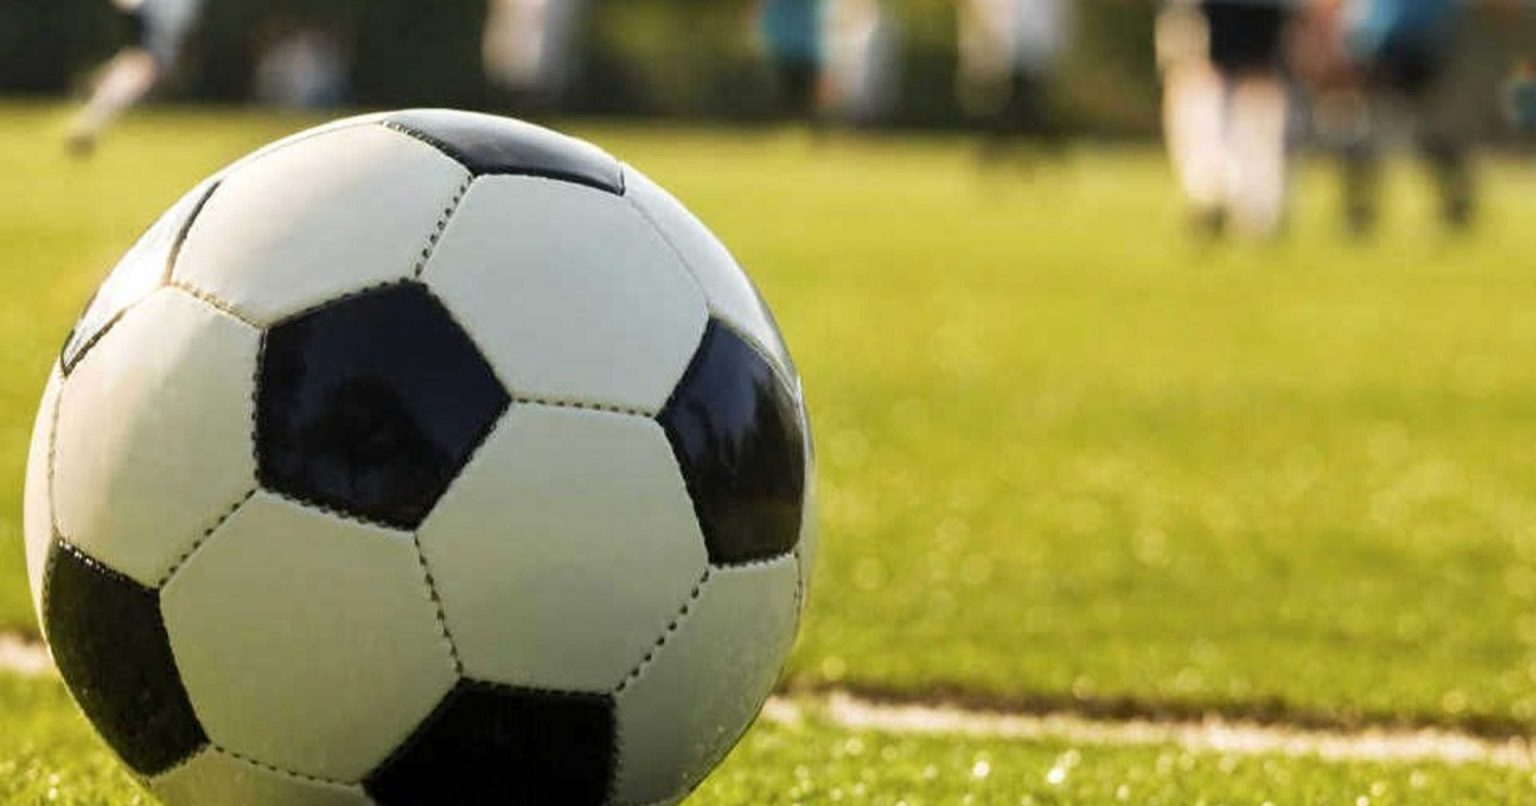 Judge denies request to let girl play on boys' soccer team